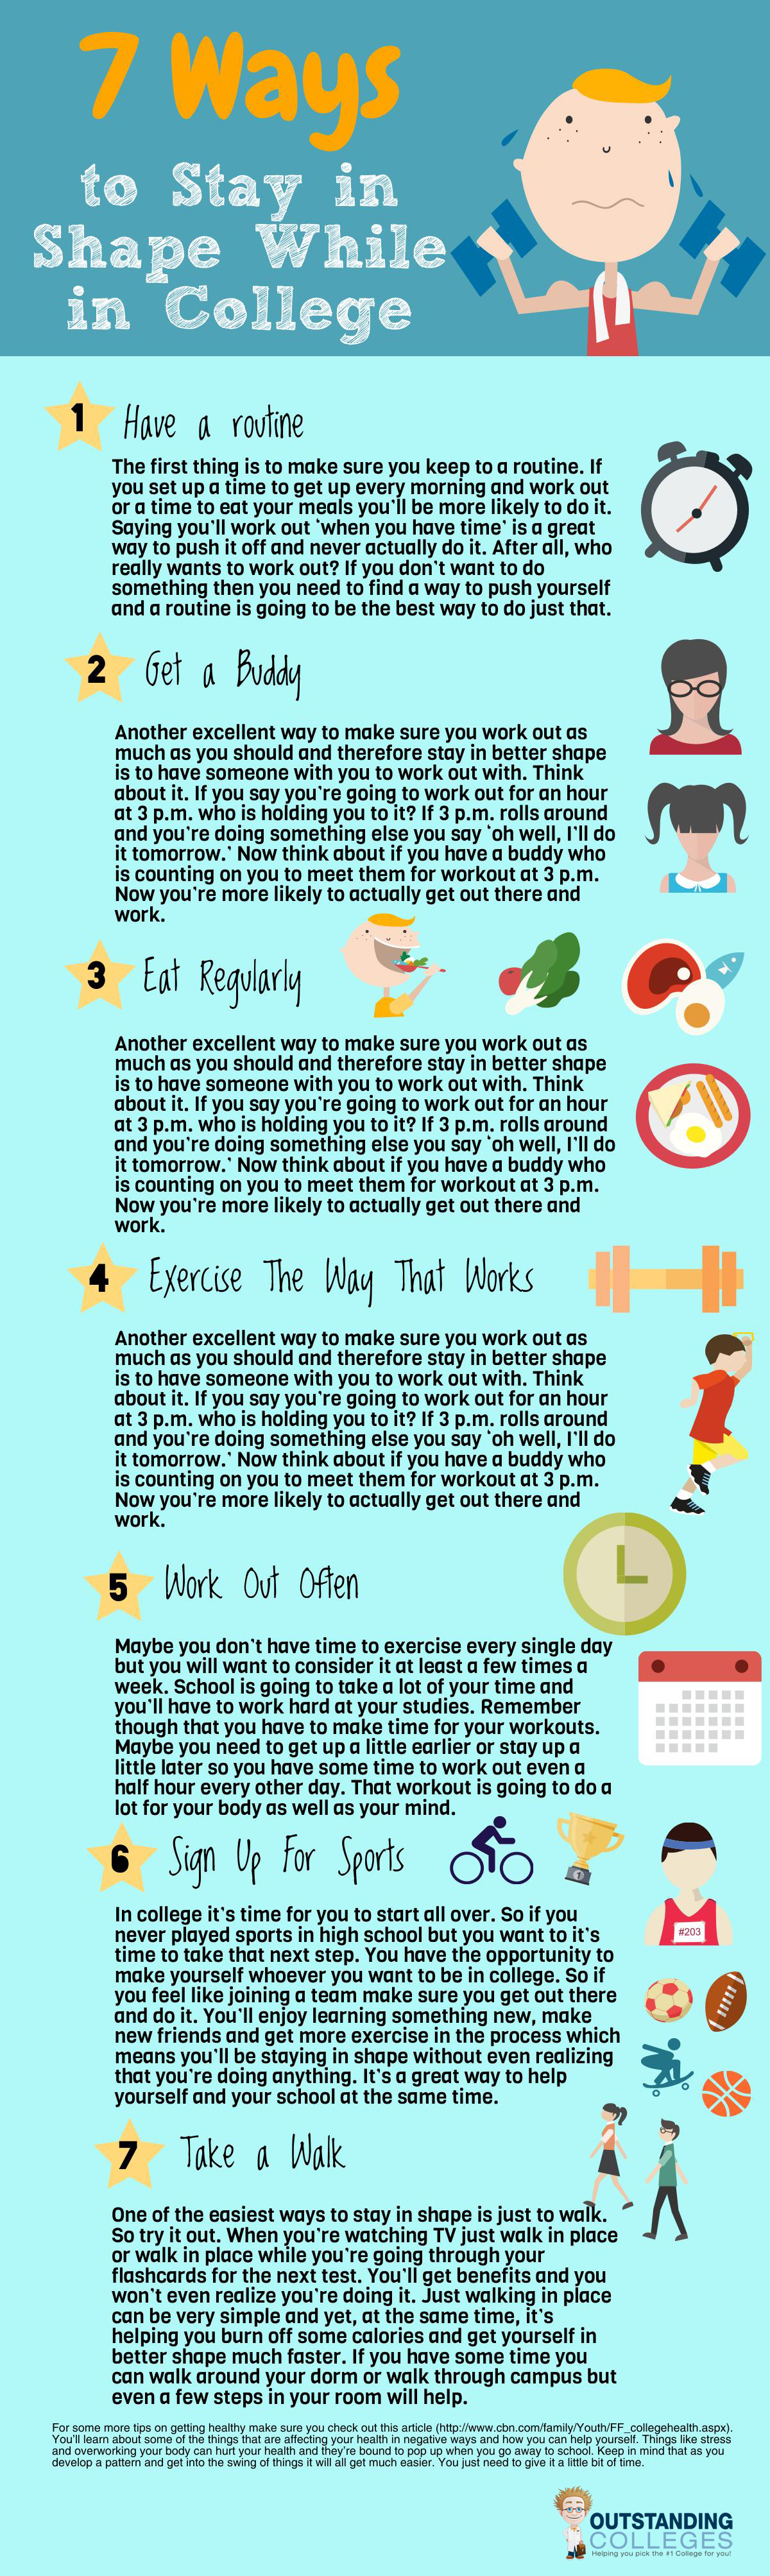 ways to stay in shape while in college keep in mind that as you develop a pattern and get into the swing of things it will all get much easier you just need to give it a little bit of time